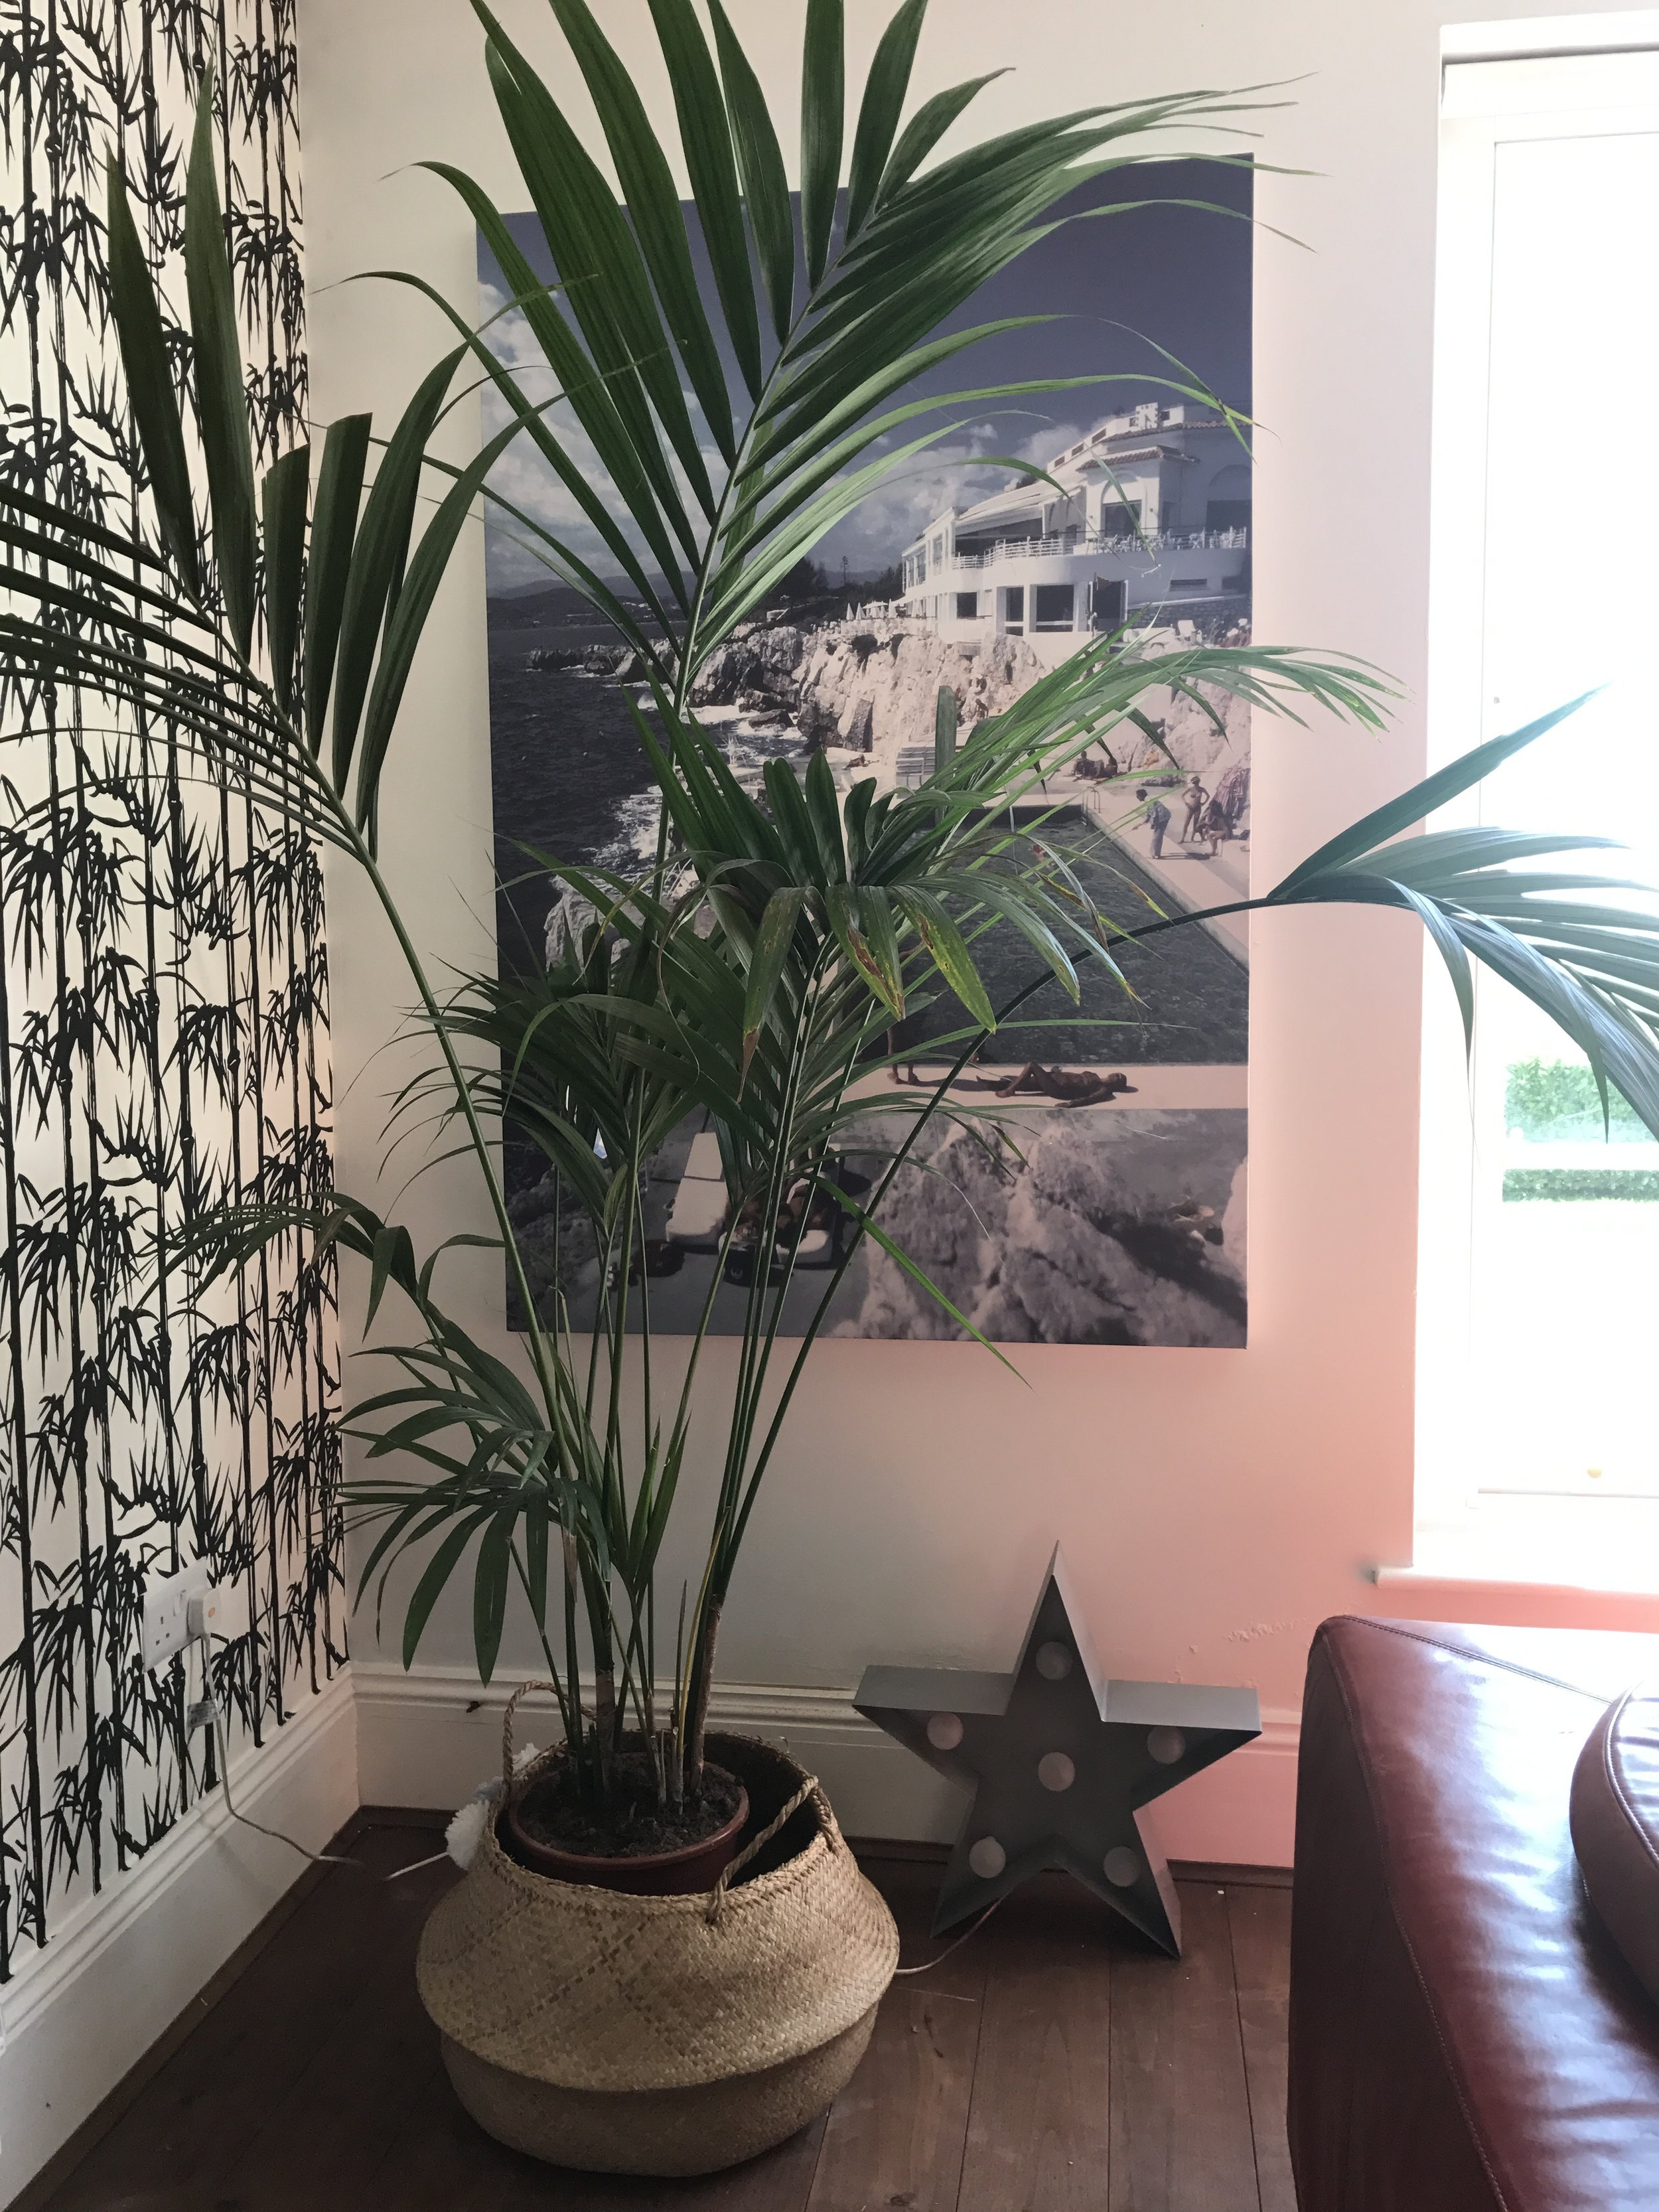 LOVE this palm. Really hope I can keep it alive.